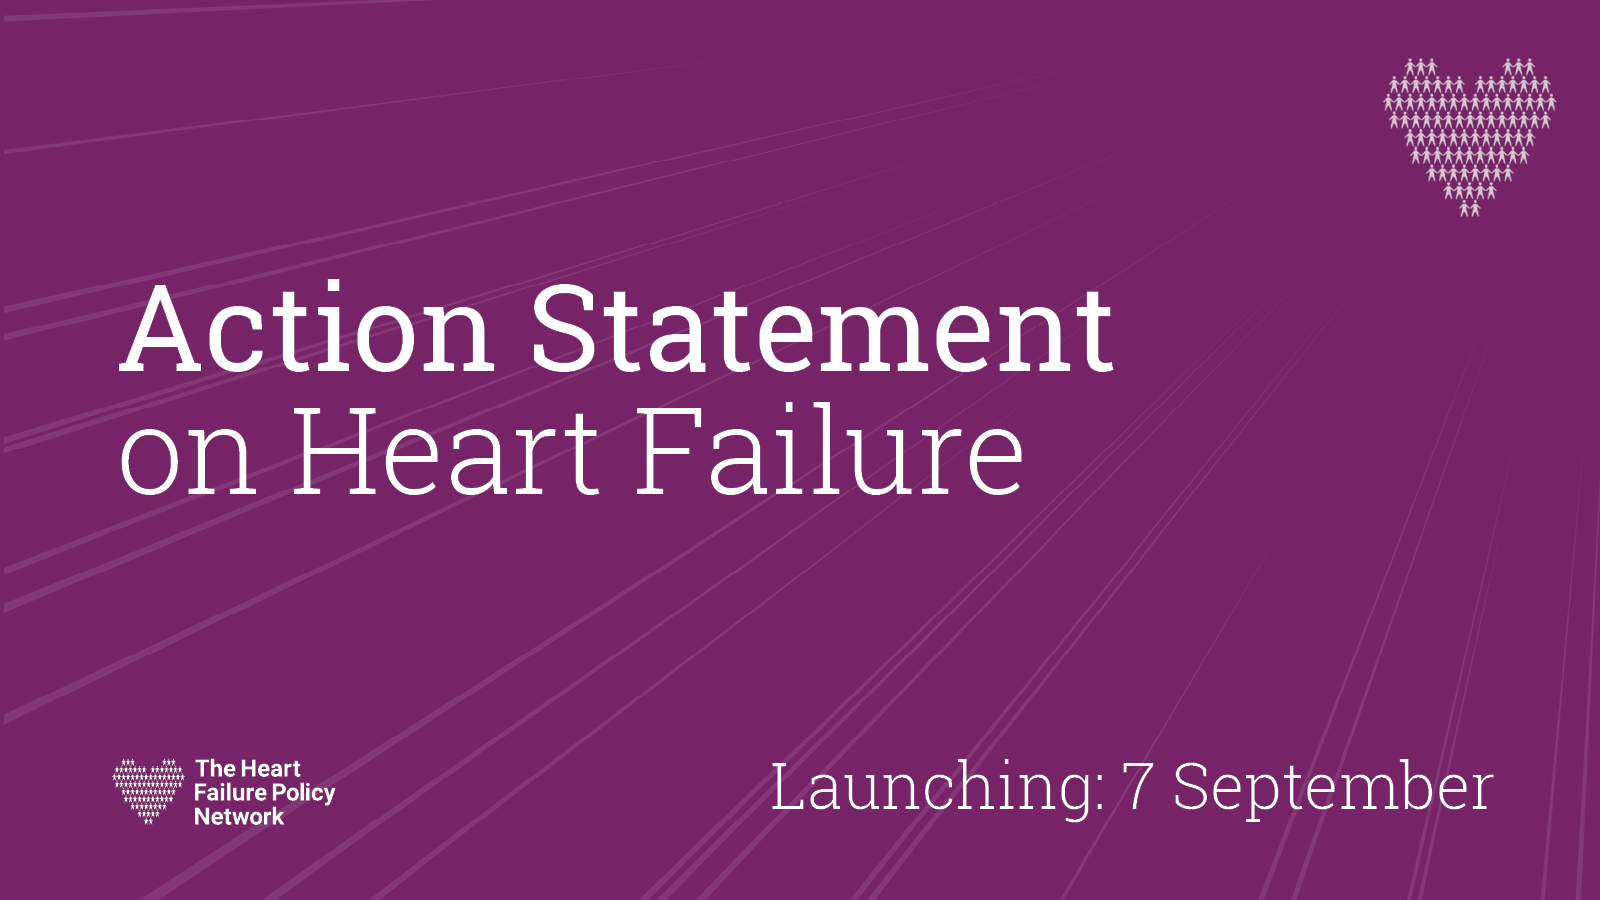 The Heart Failure Network launches the action statement on heartfailure